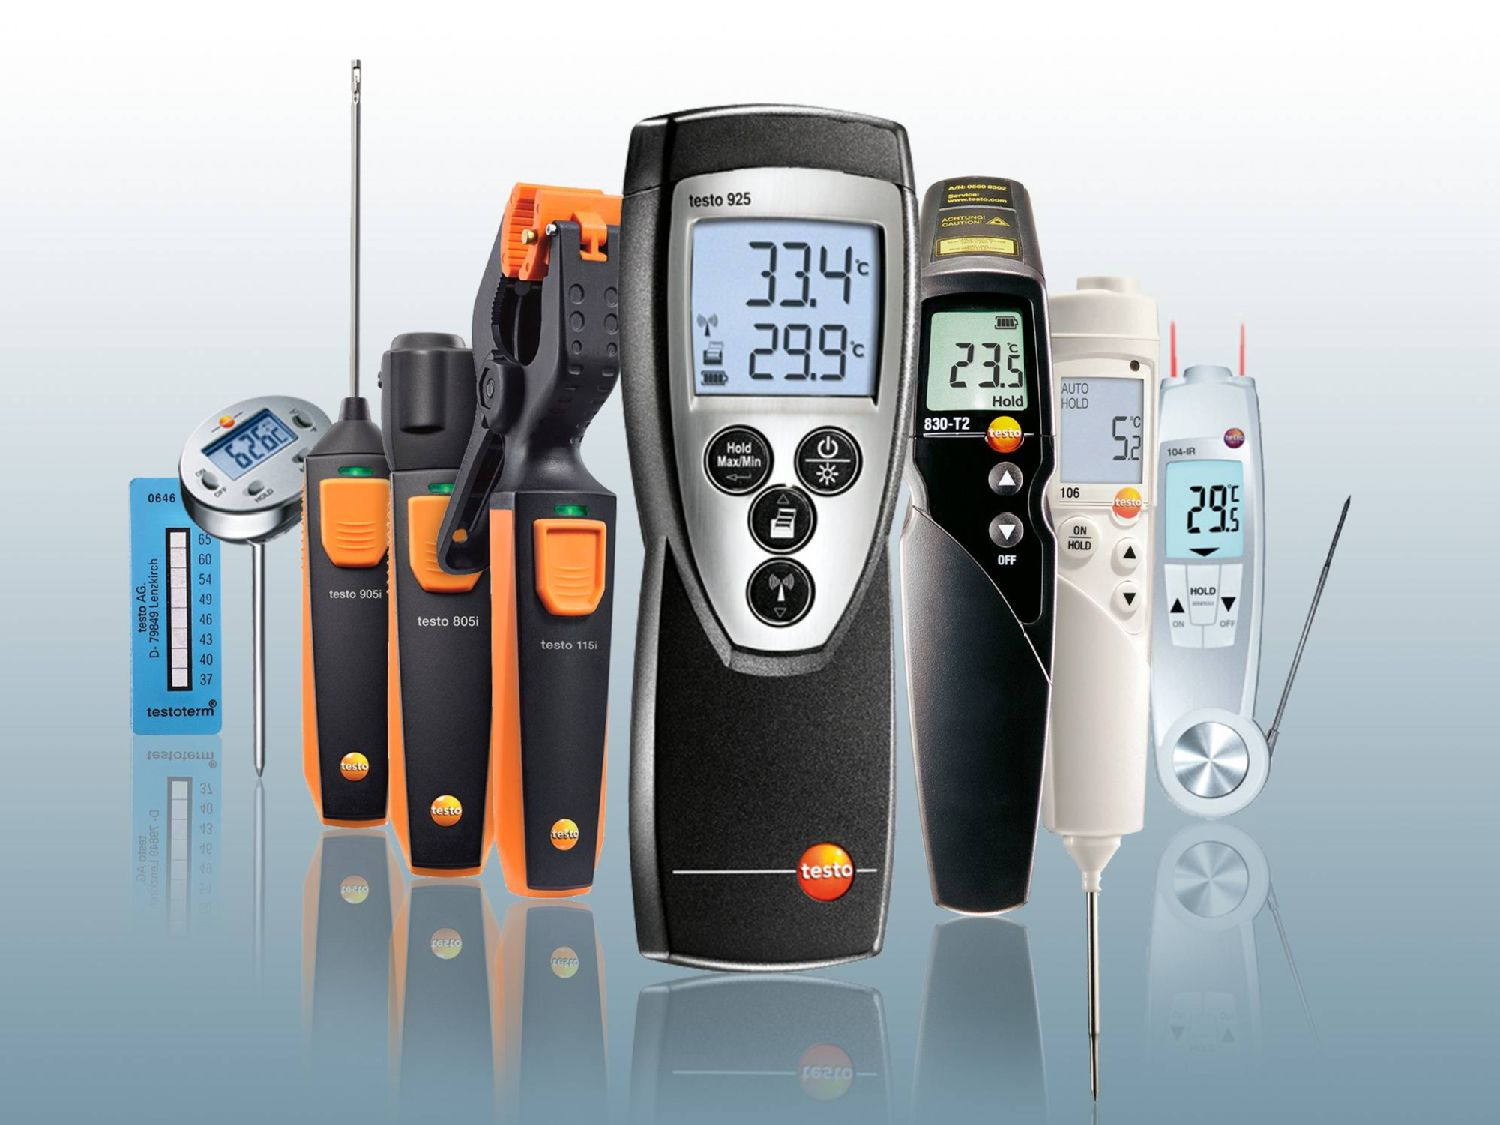 More measuring instruments for temperature measurement from Testo